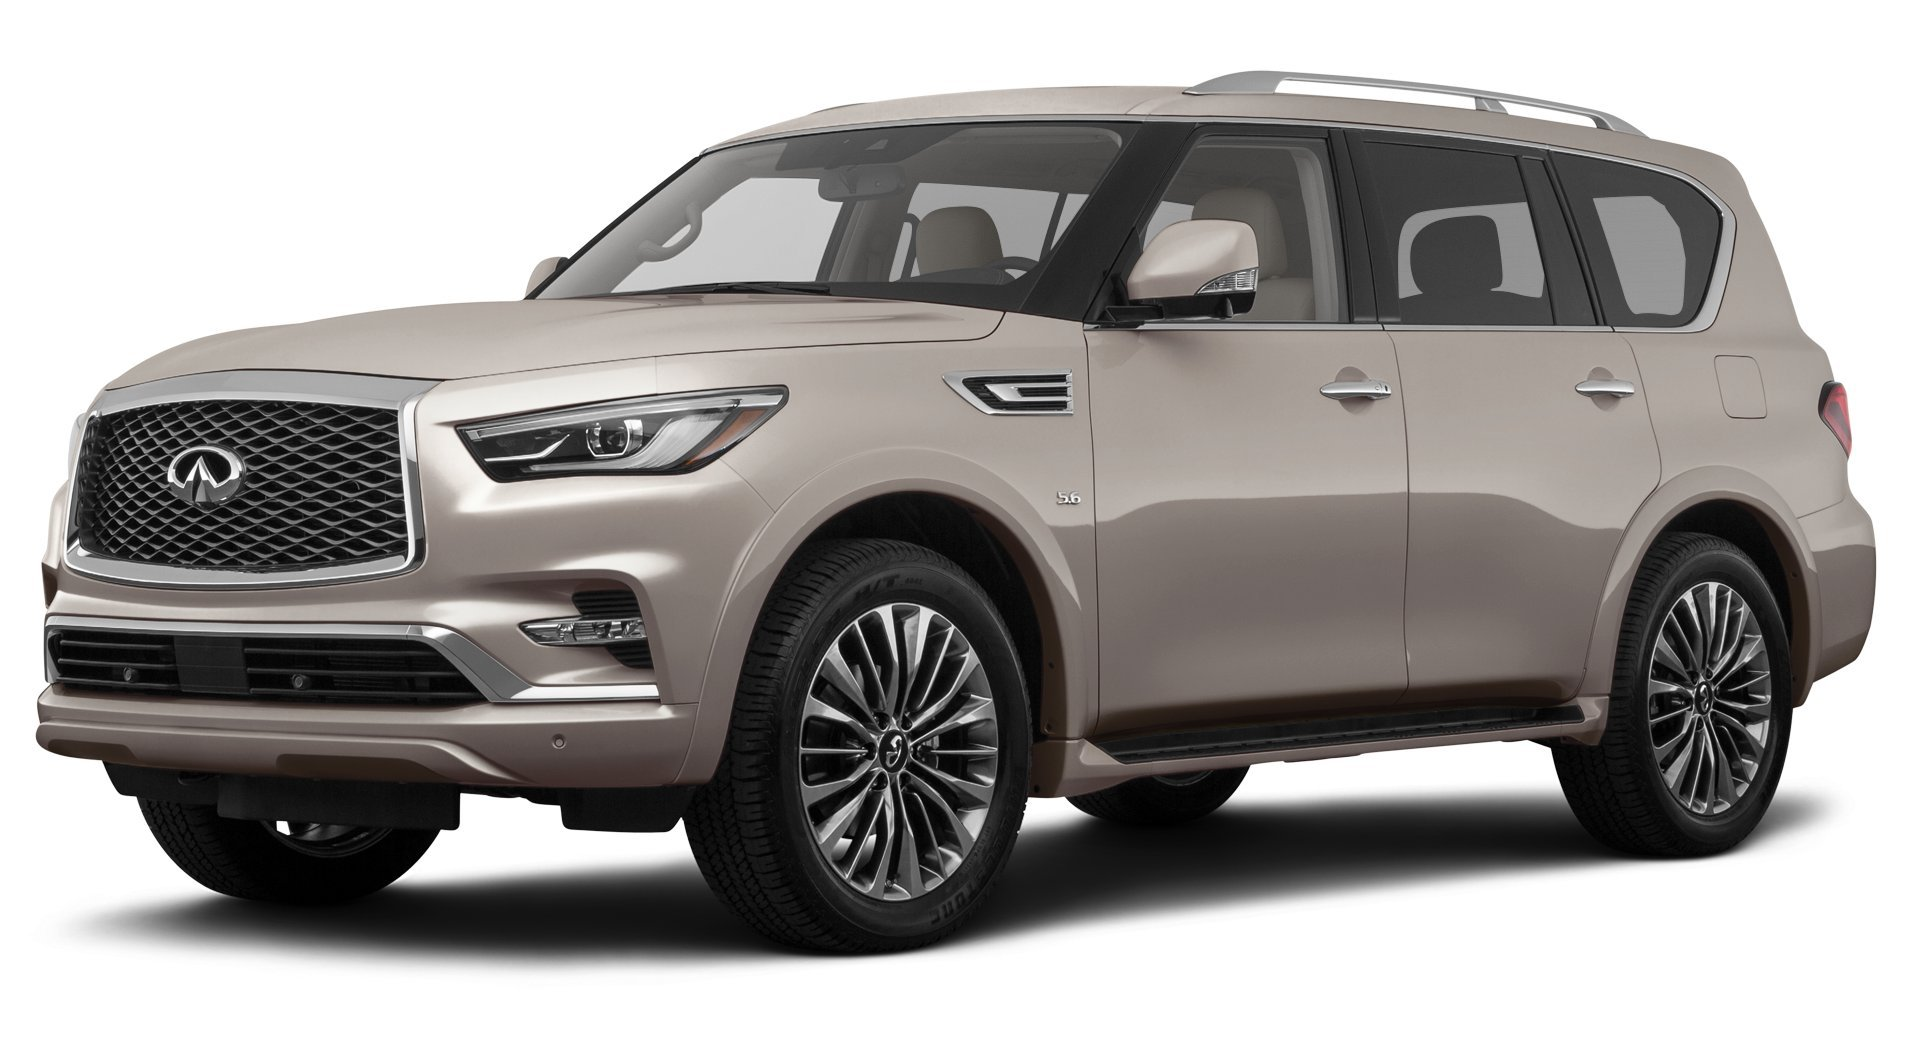 ... 2018 Infiniti QX80, All Wheel Drive ...